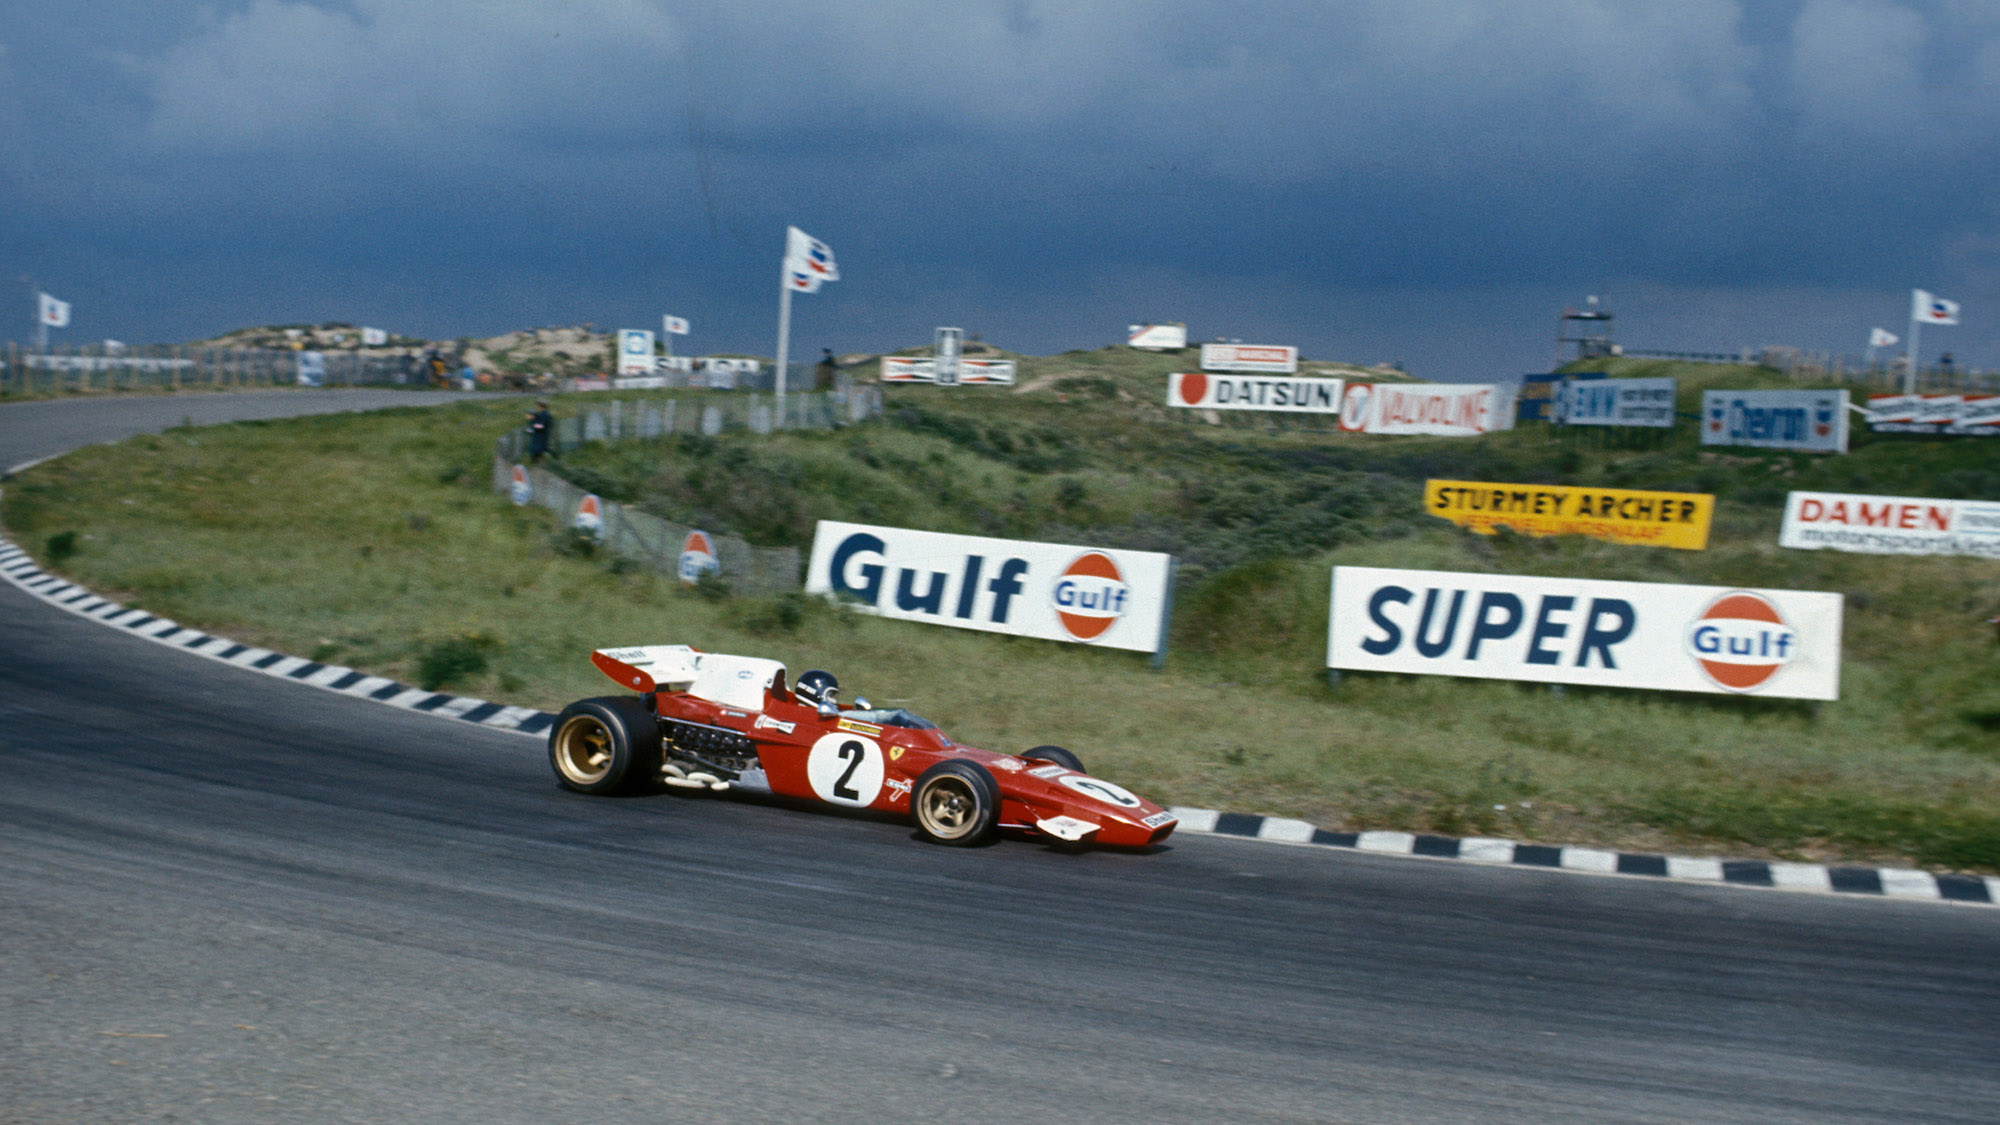 Jacky Ickx on track at the 1971 Dutch Grand Prix